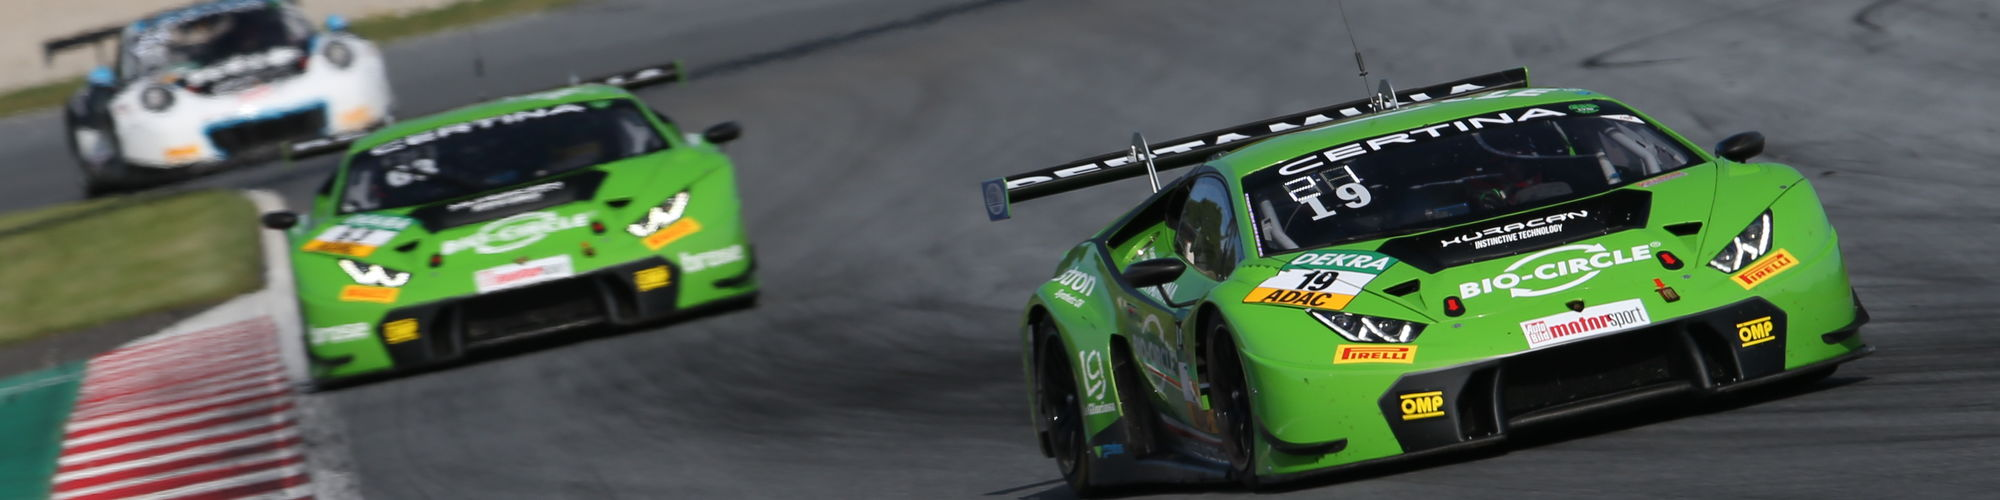 Grasser Racing Team cover image